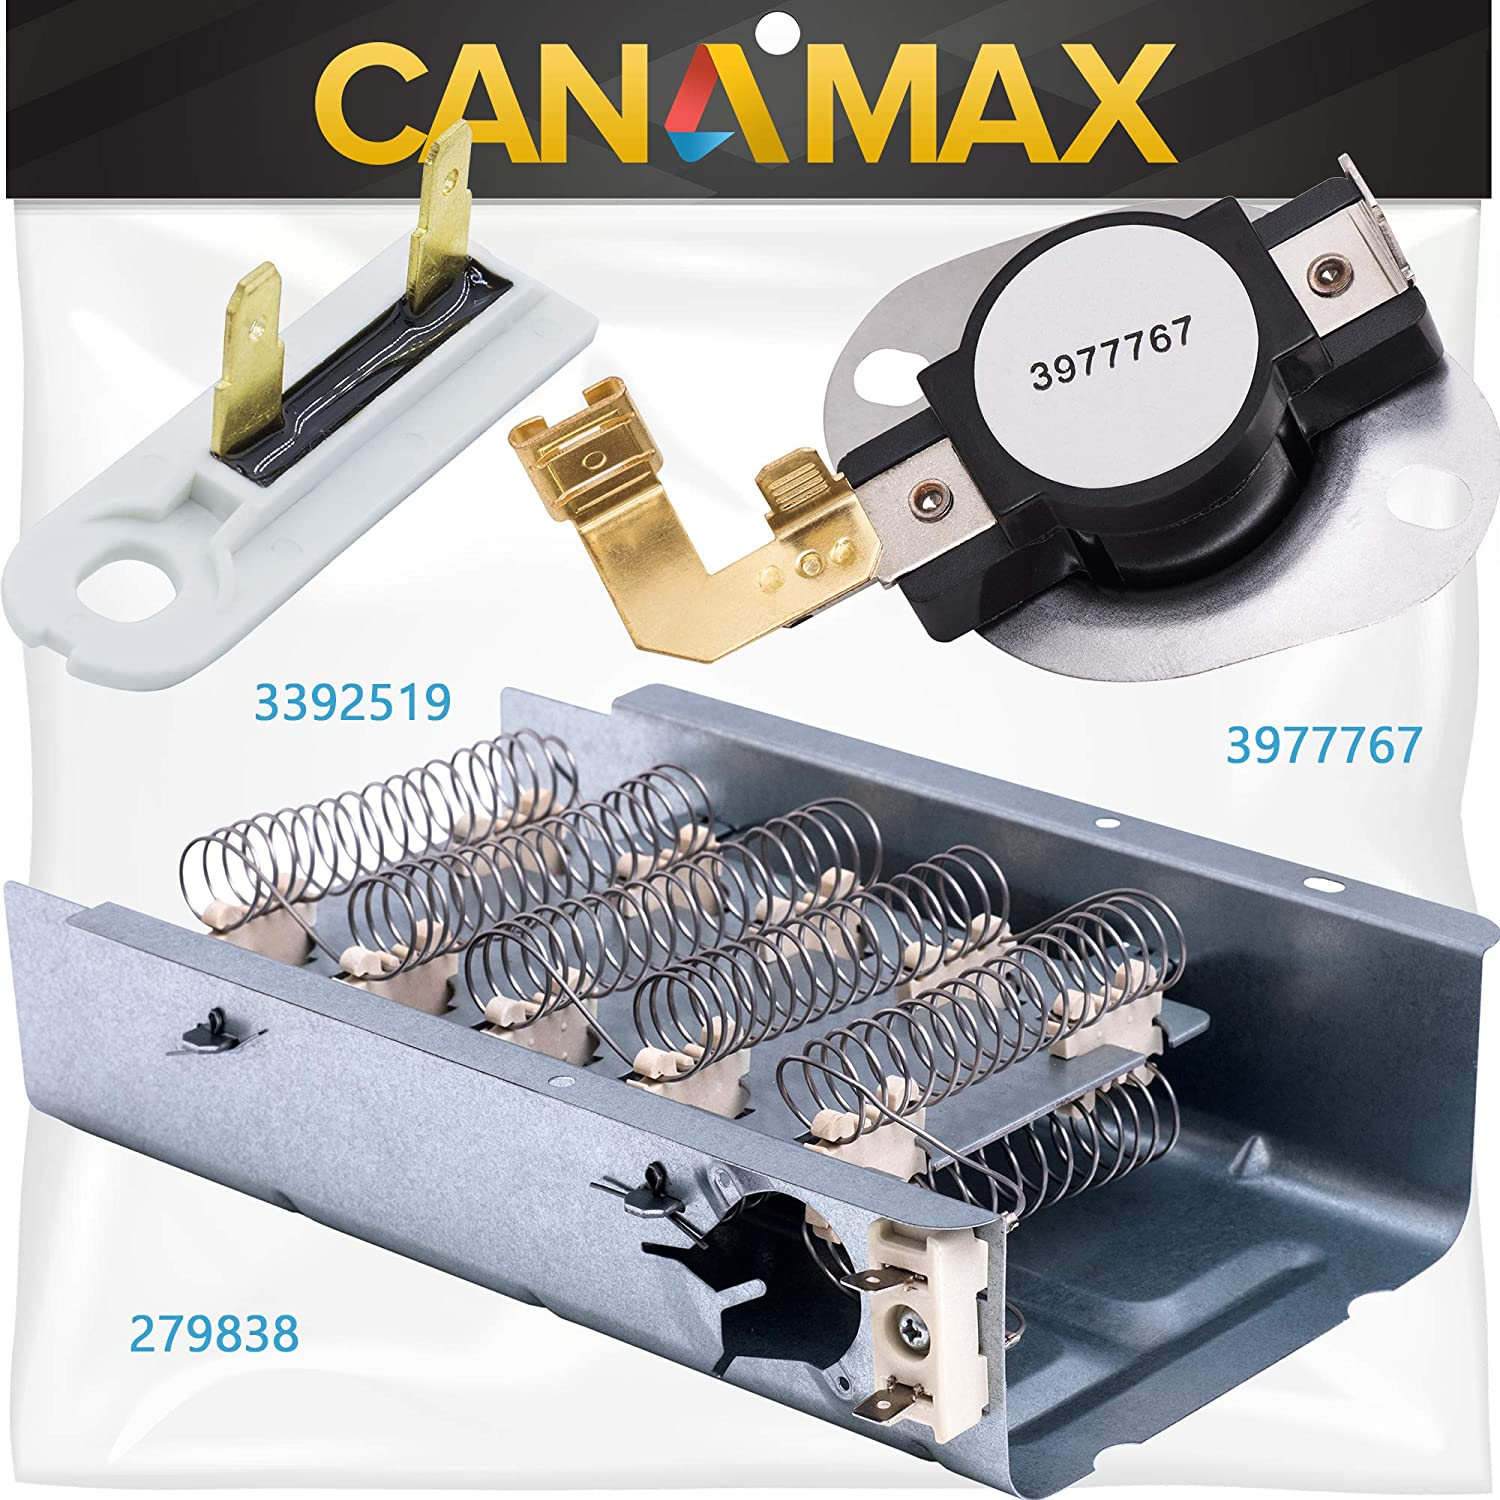 279838 Dryer Heating Element 3977767 3392519 Thermal Fuse Thermostat Kit Premium Replacement by Canamax - Compatible with Whirlpool Kenmore Roper Maytag Estate Dryers